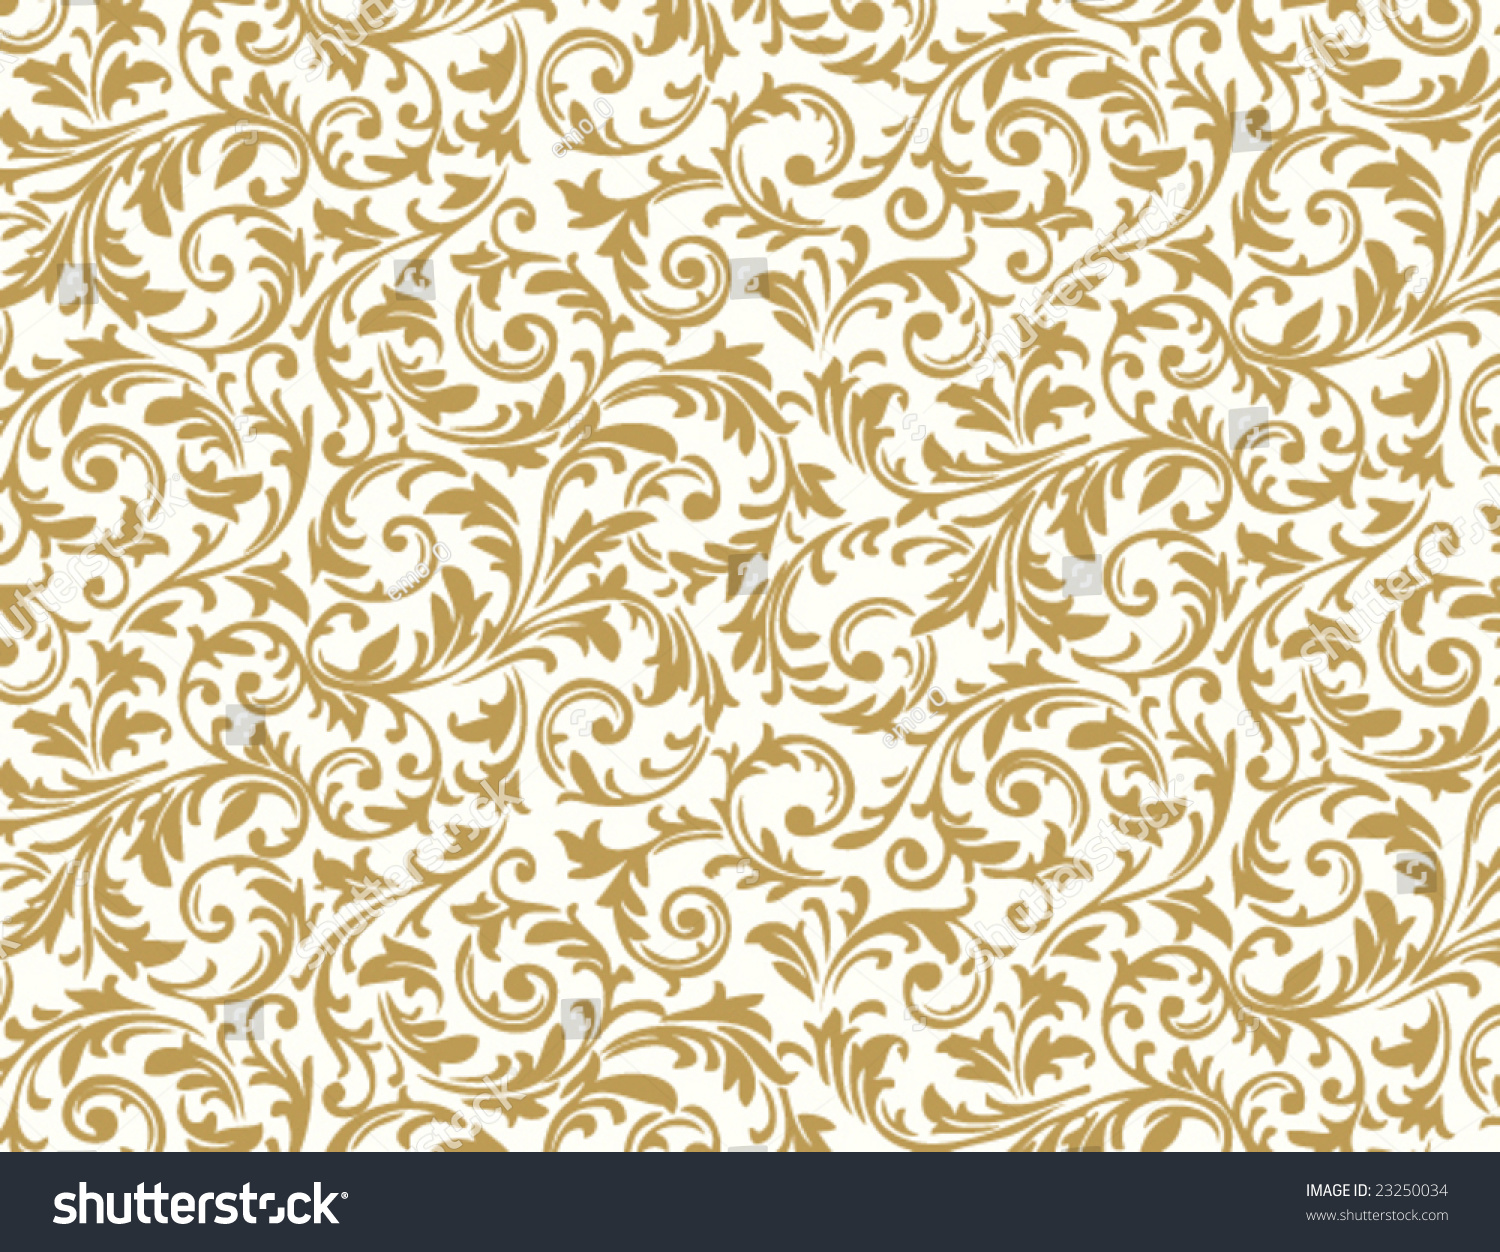 Seamless Floral Pattern Stock Vector Illustration 23250034